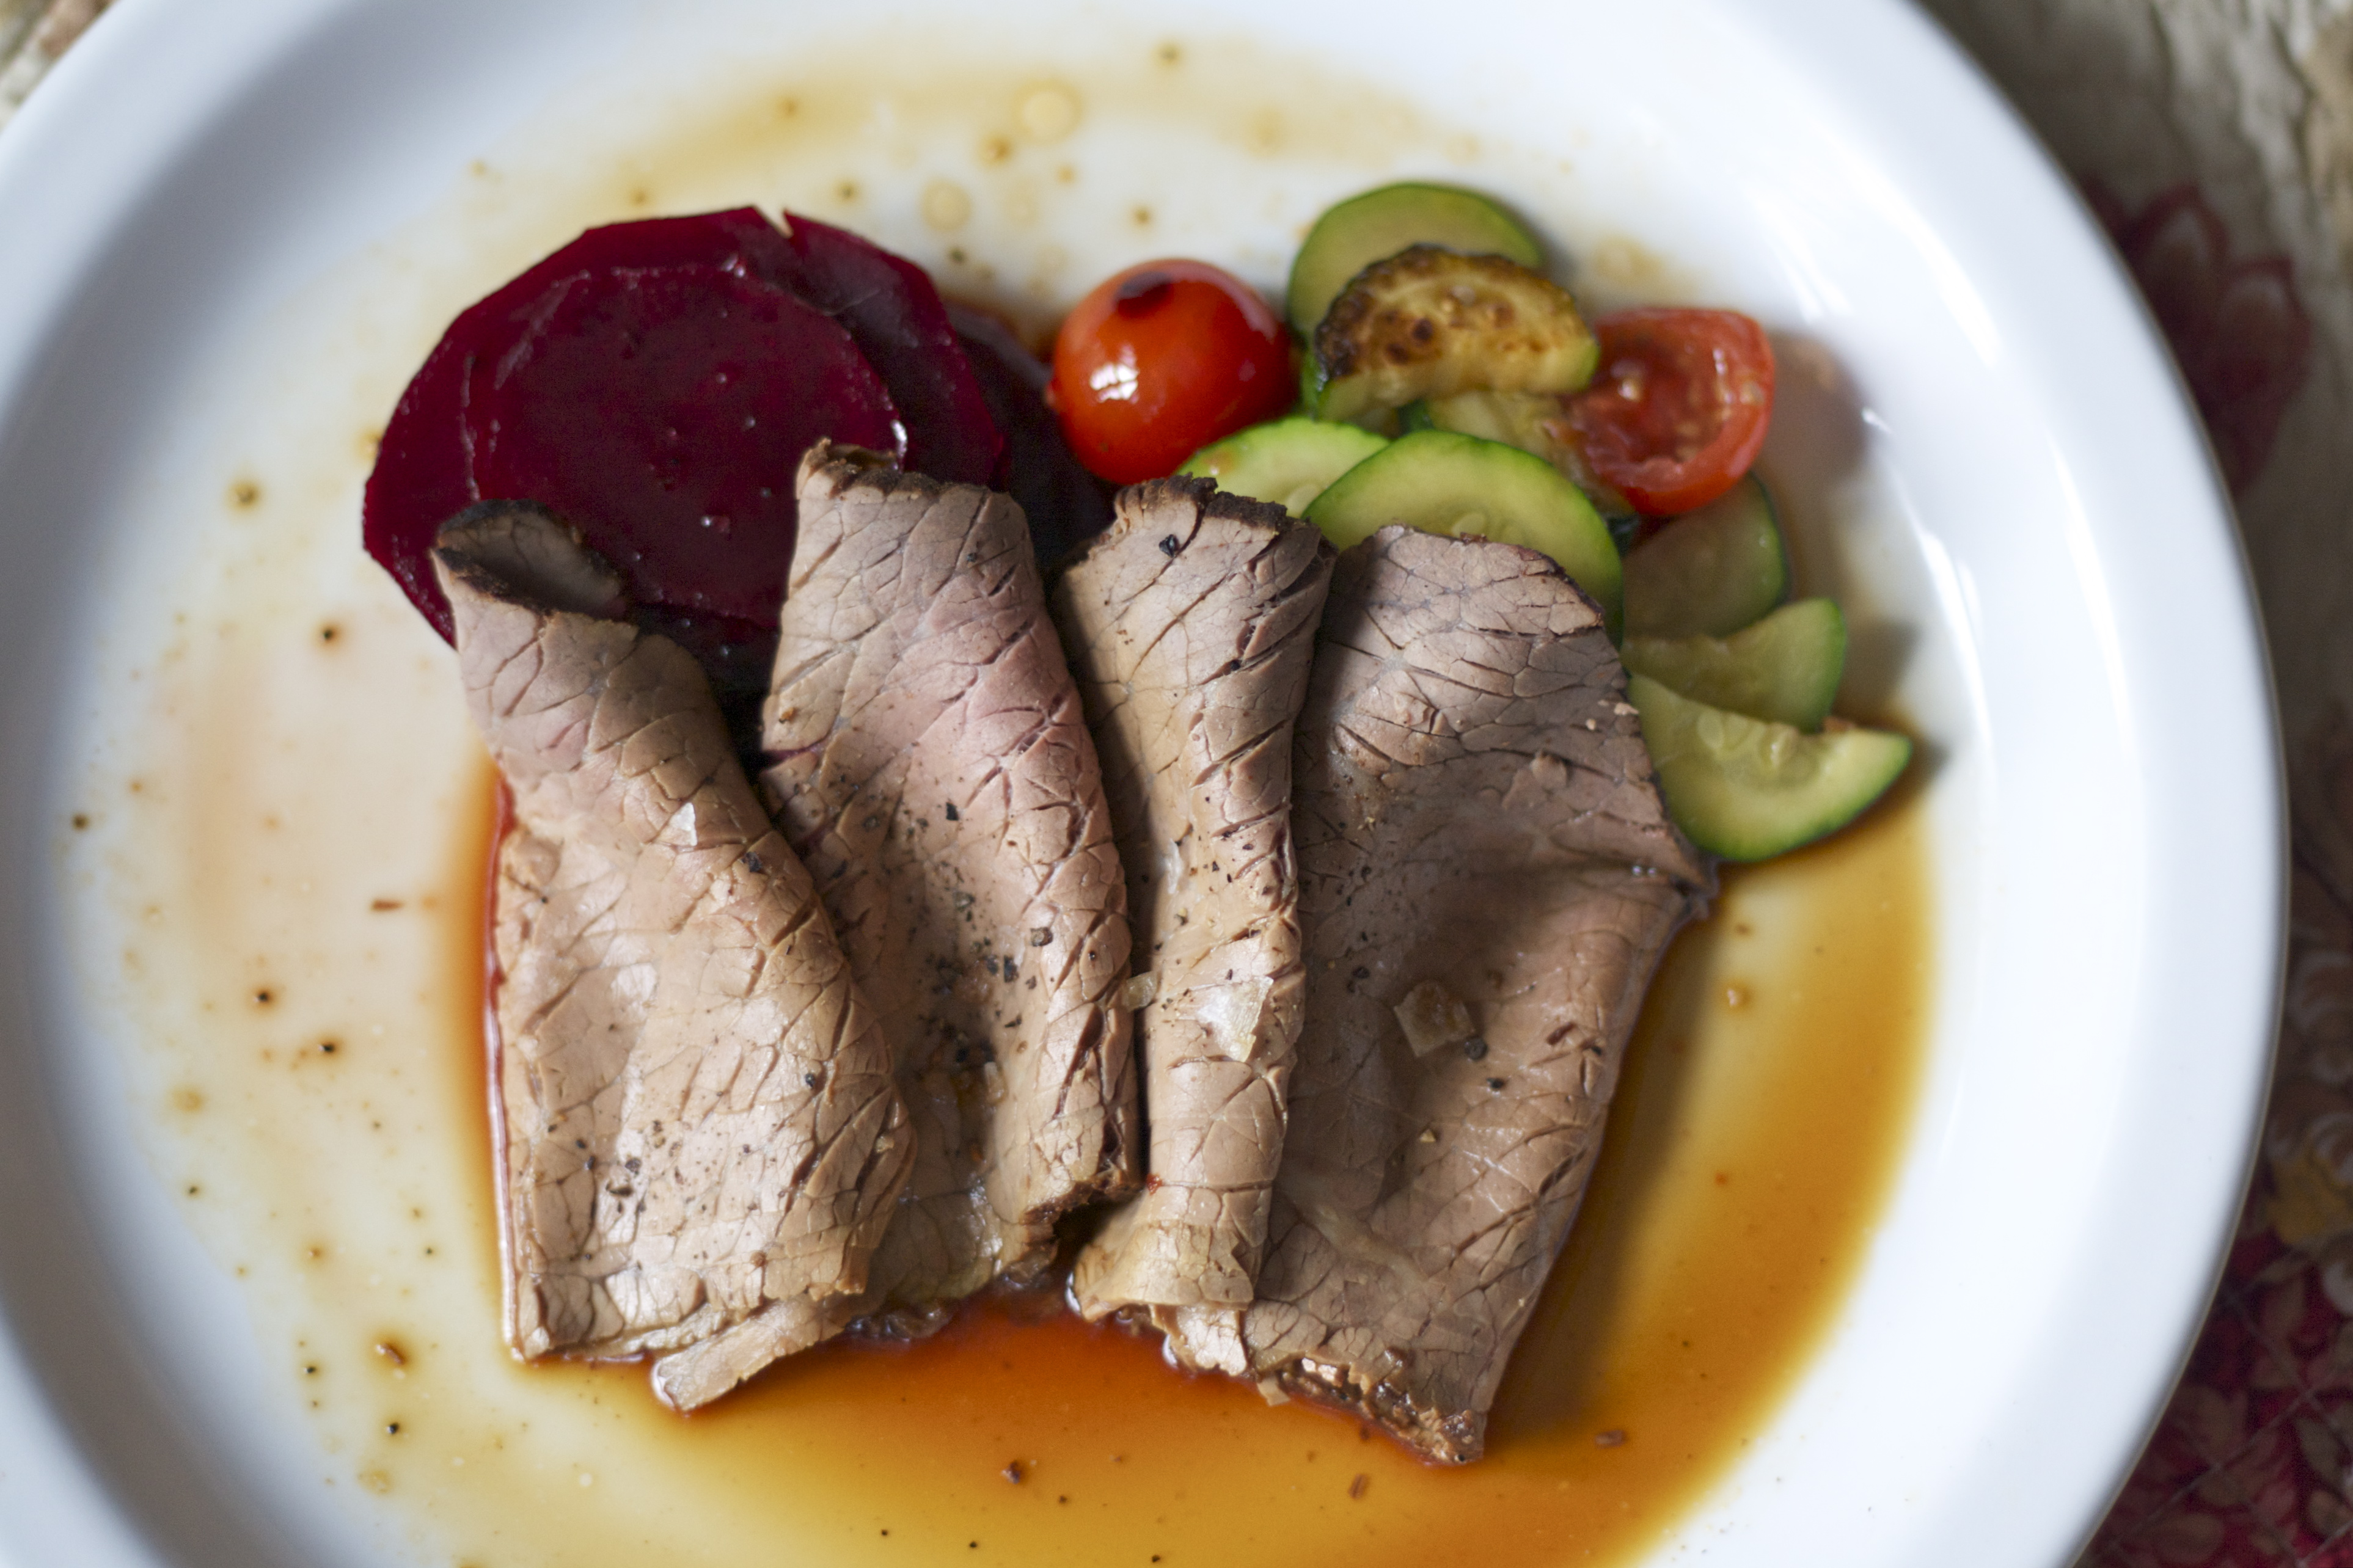 GAPS diet legal roast beef recipe on plate with vegetables, from Christina at Edible Times.